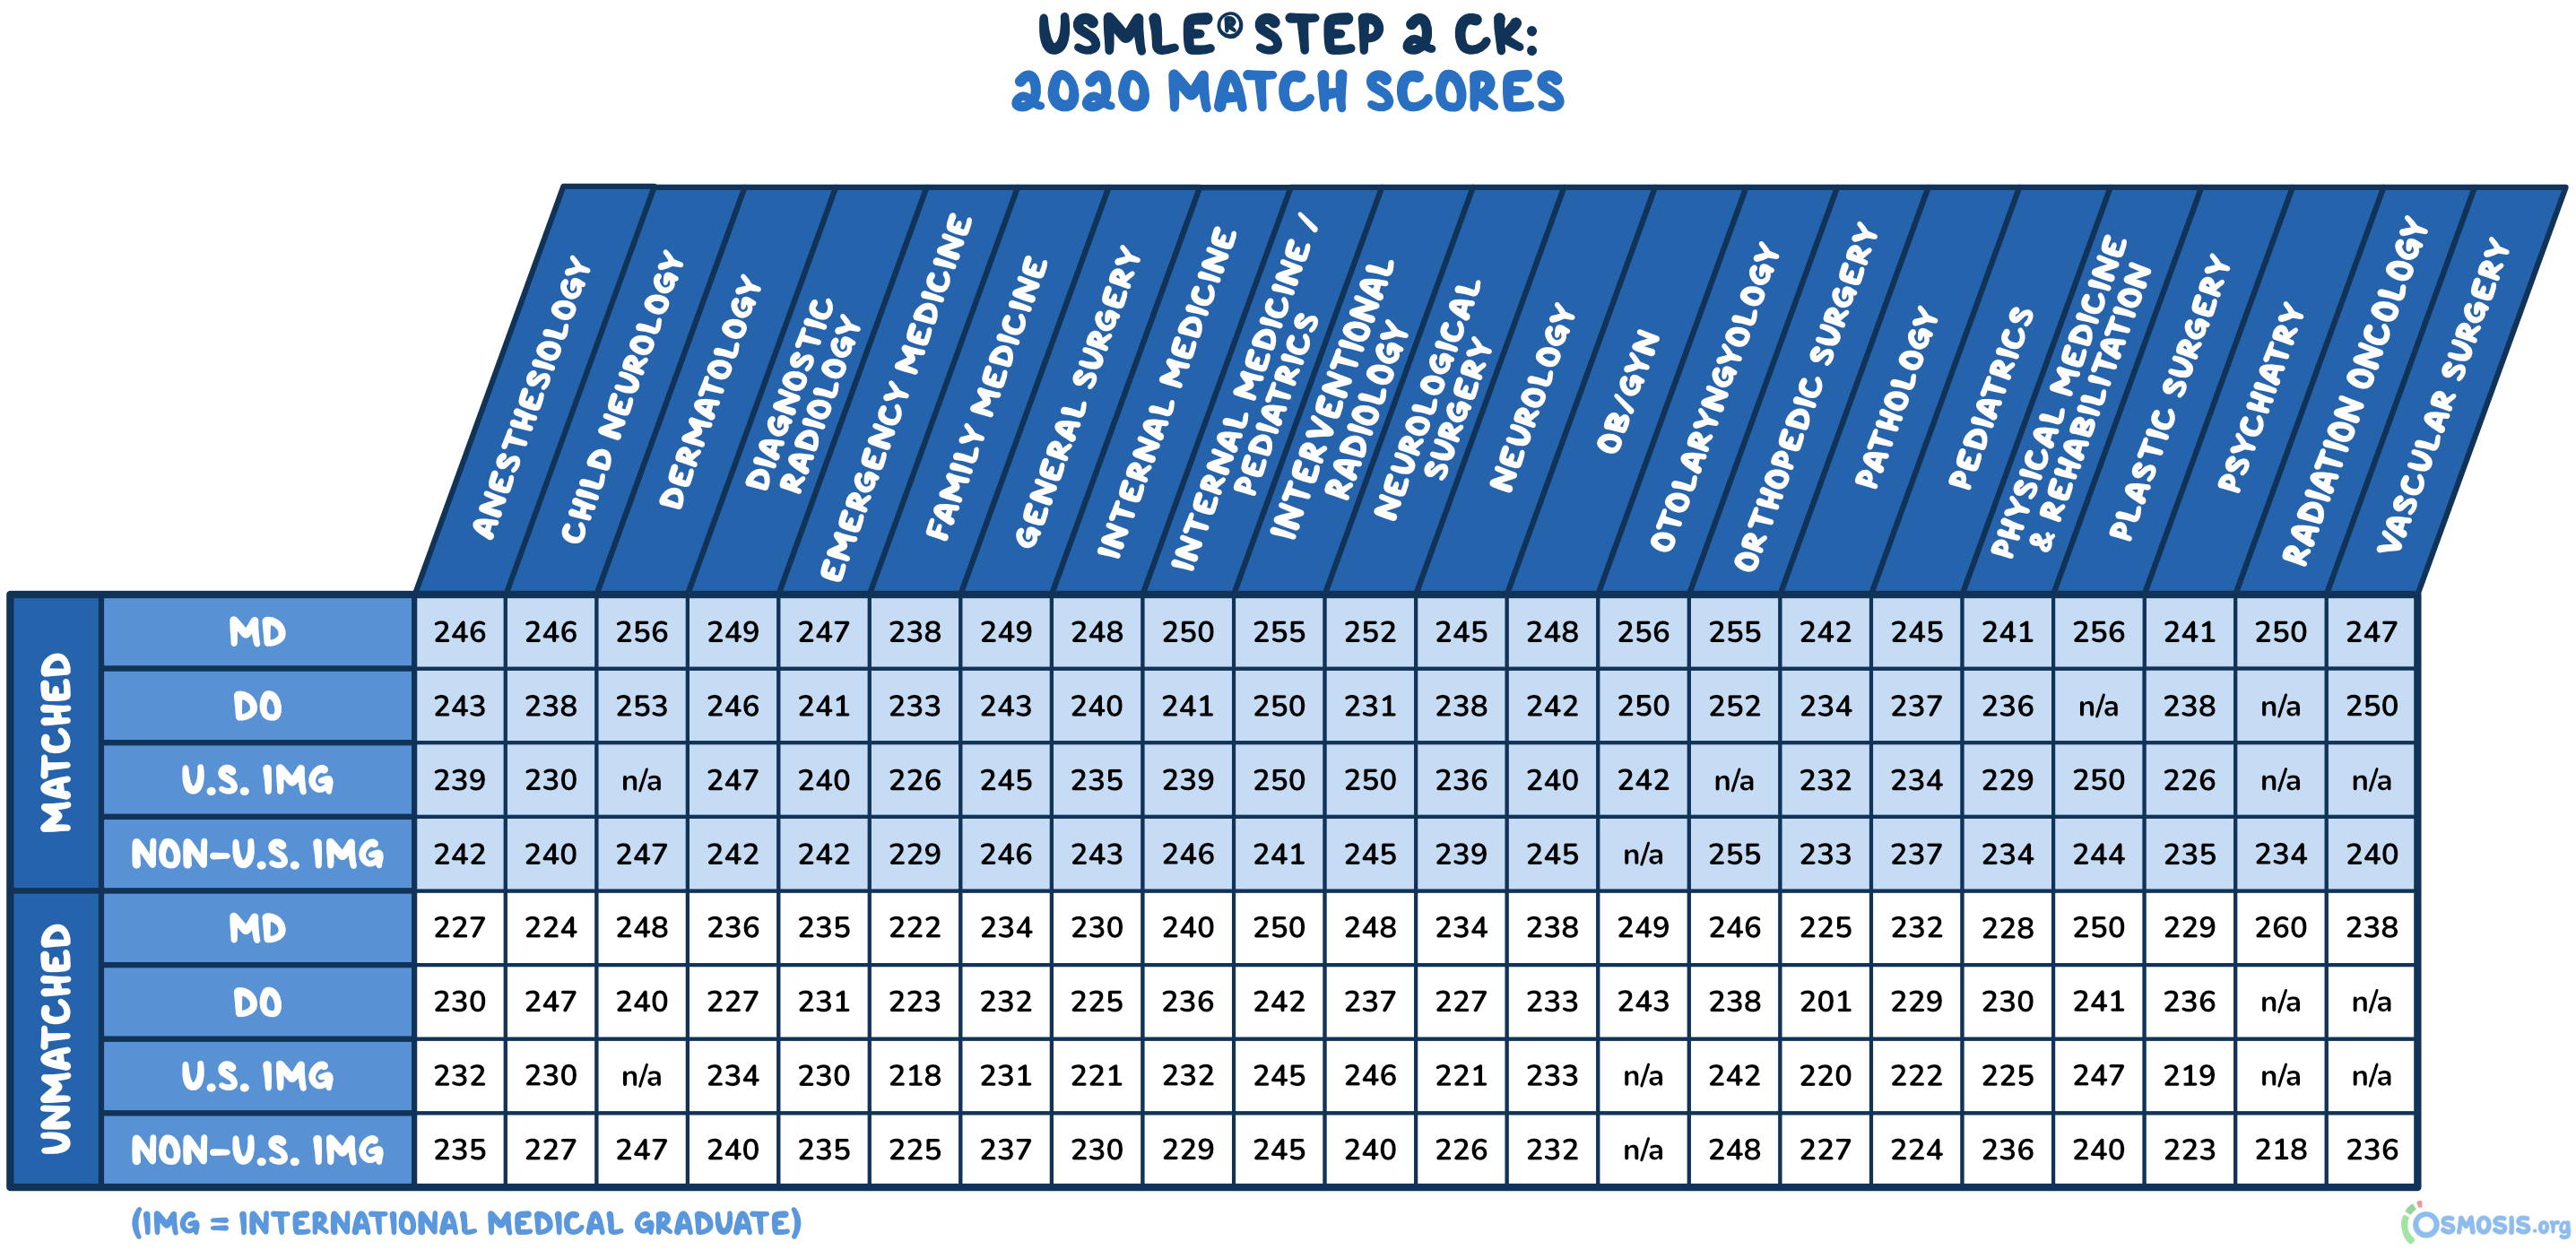 Osmosis table showing the mean USMLE® Step 2 CK scores across specialties.